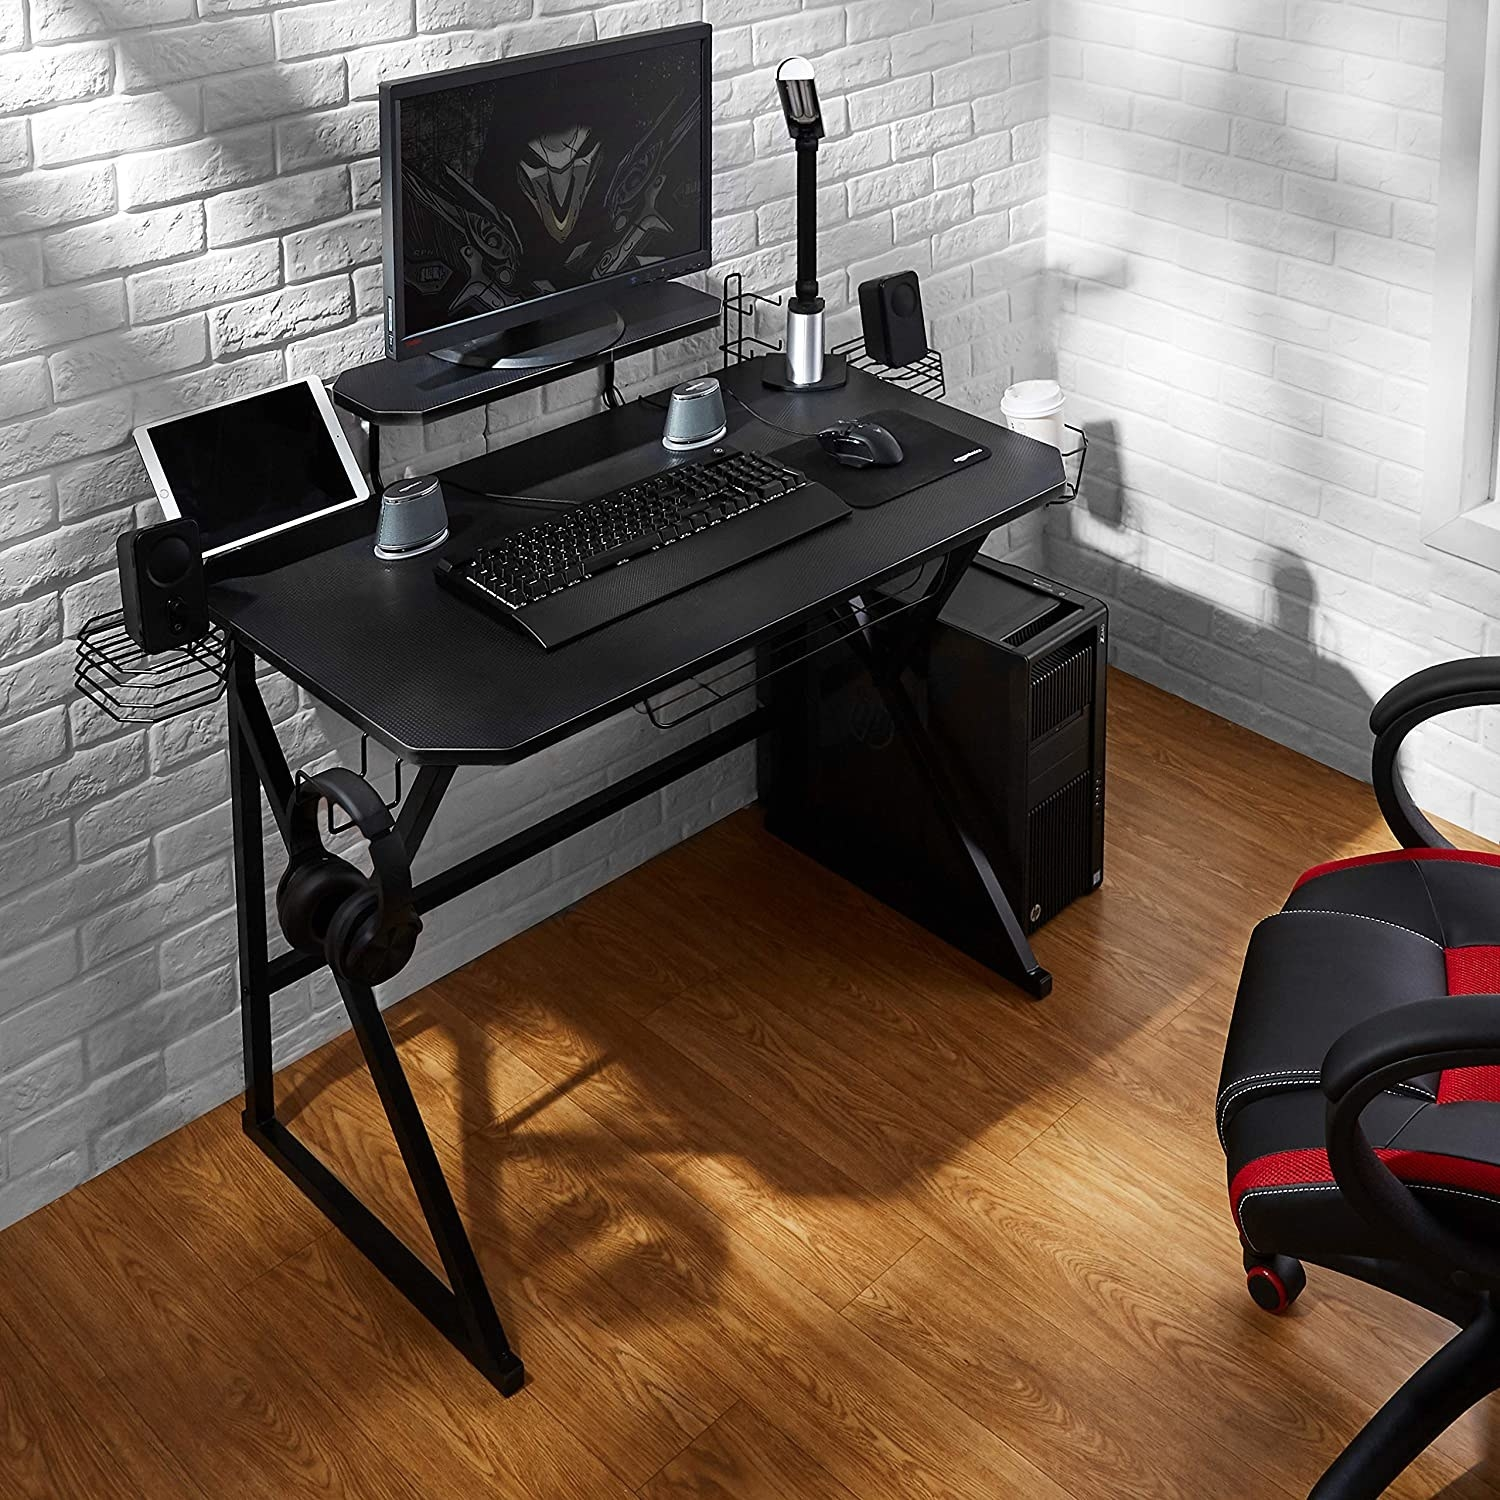 desk with computer, headset, and other accessories